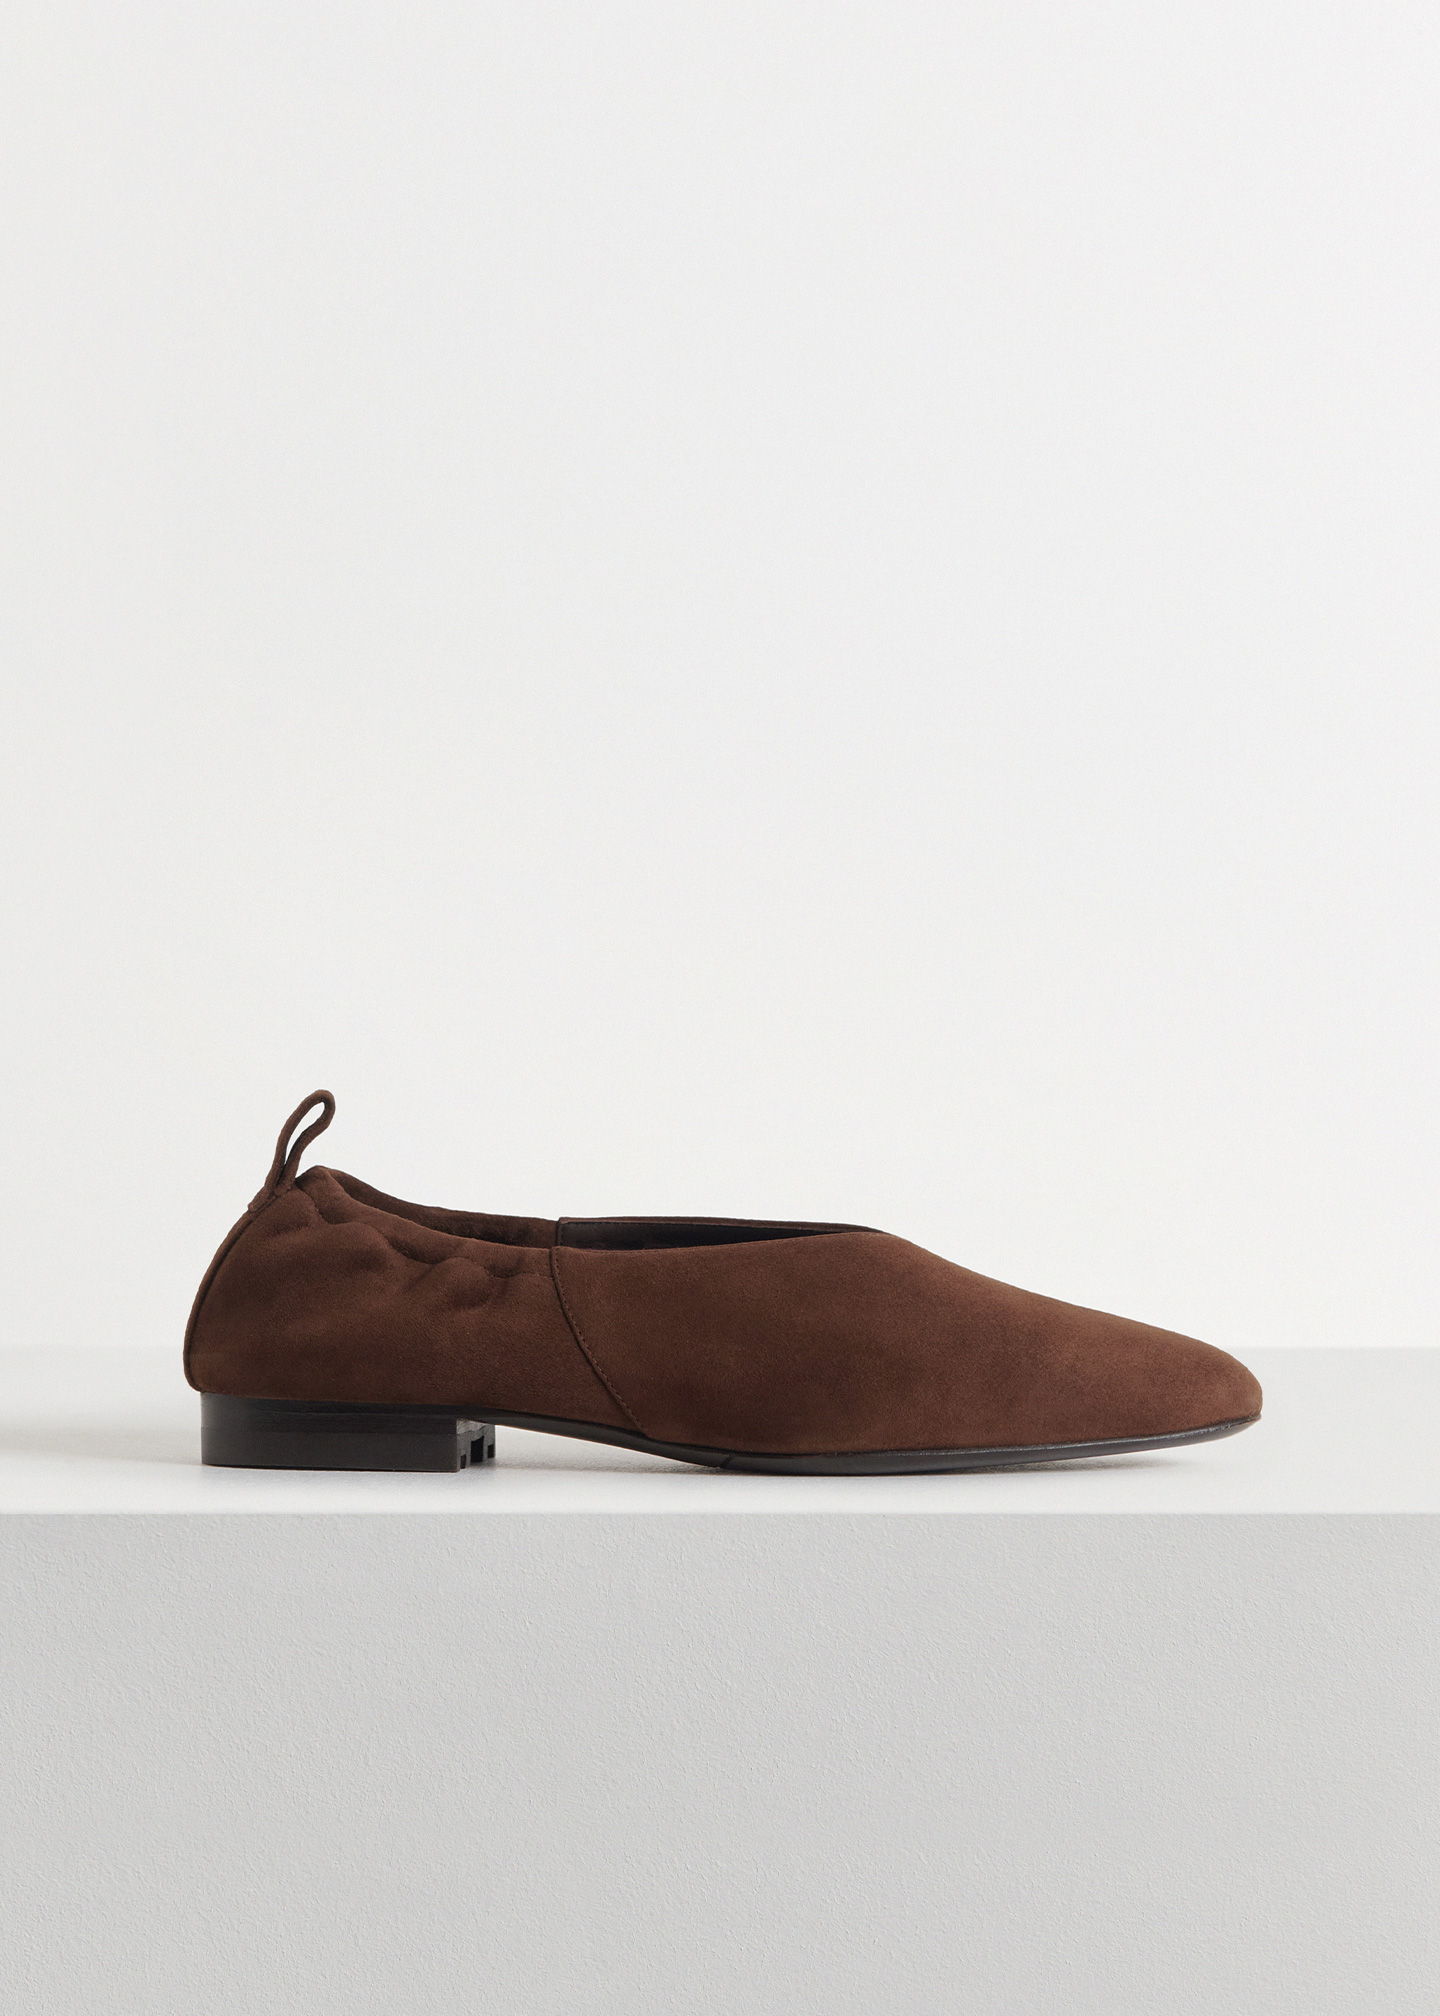 Ballet Flat in Suede - Sand in Dark Brown by Co Collections